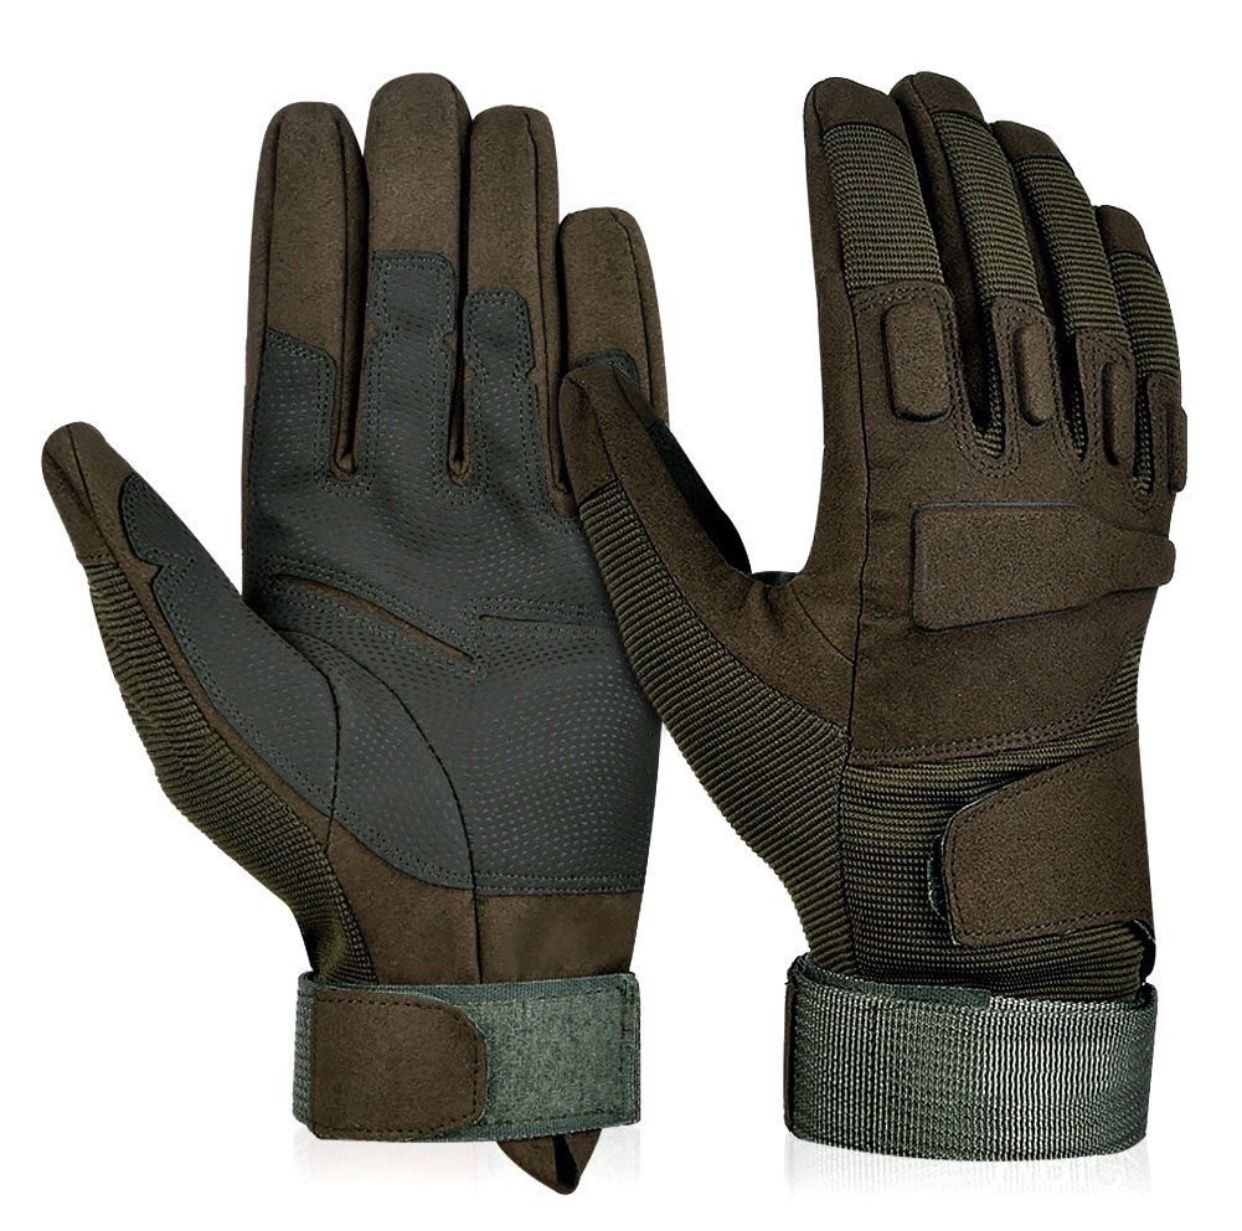 Adiew Full Finger Tactical Gloves Tactical Clothing